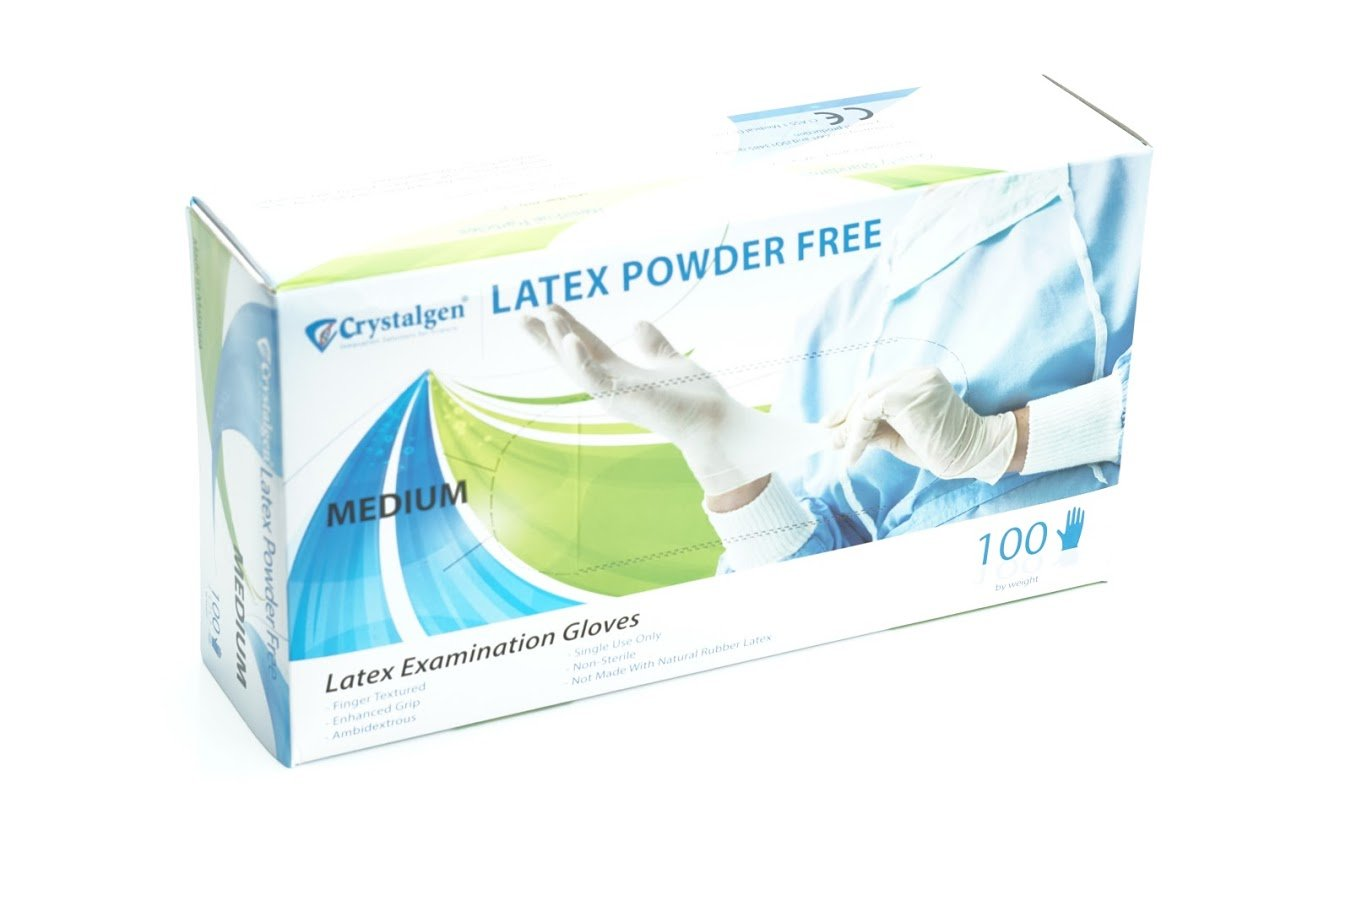 Crystalgen - Powder Free Latex Gloves